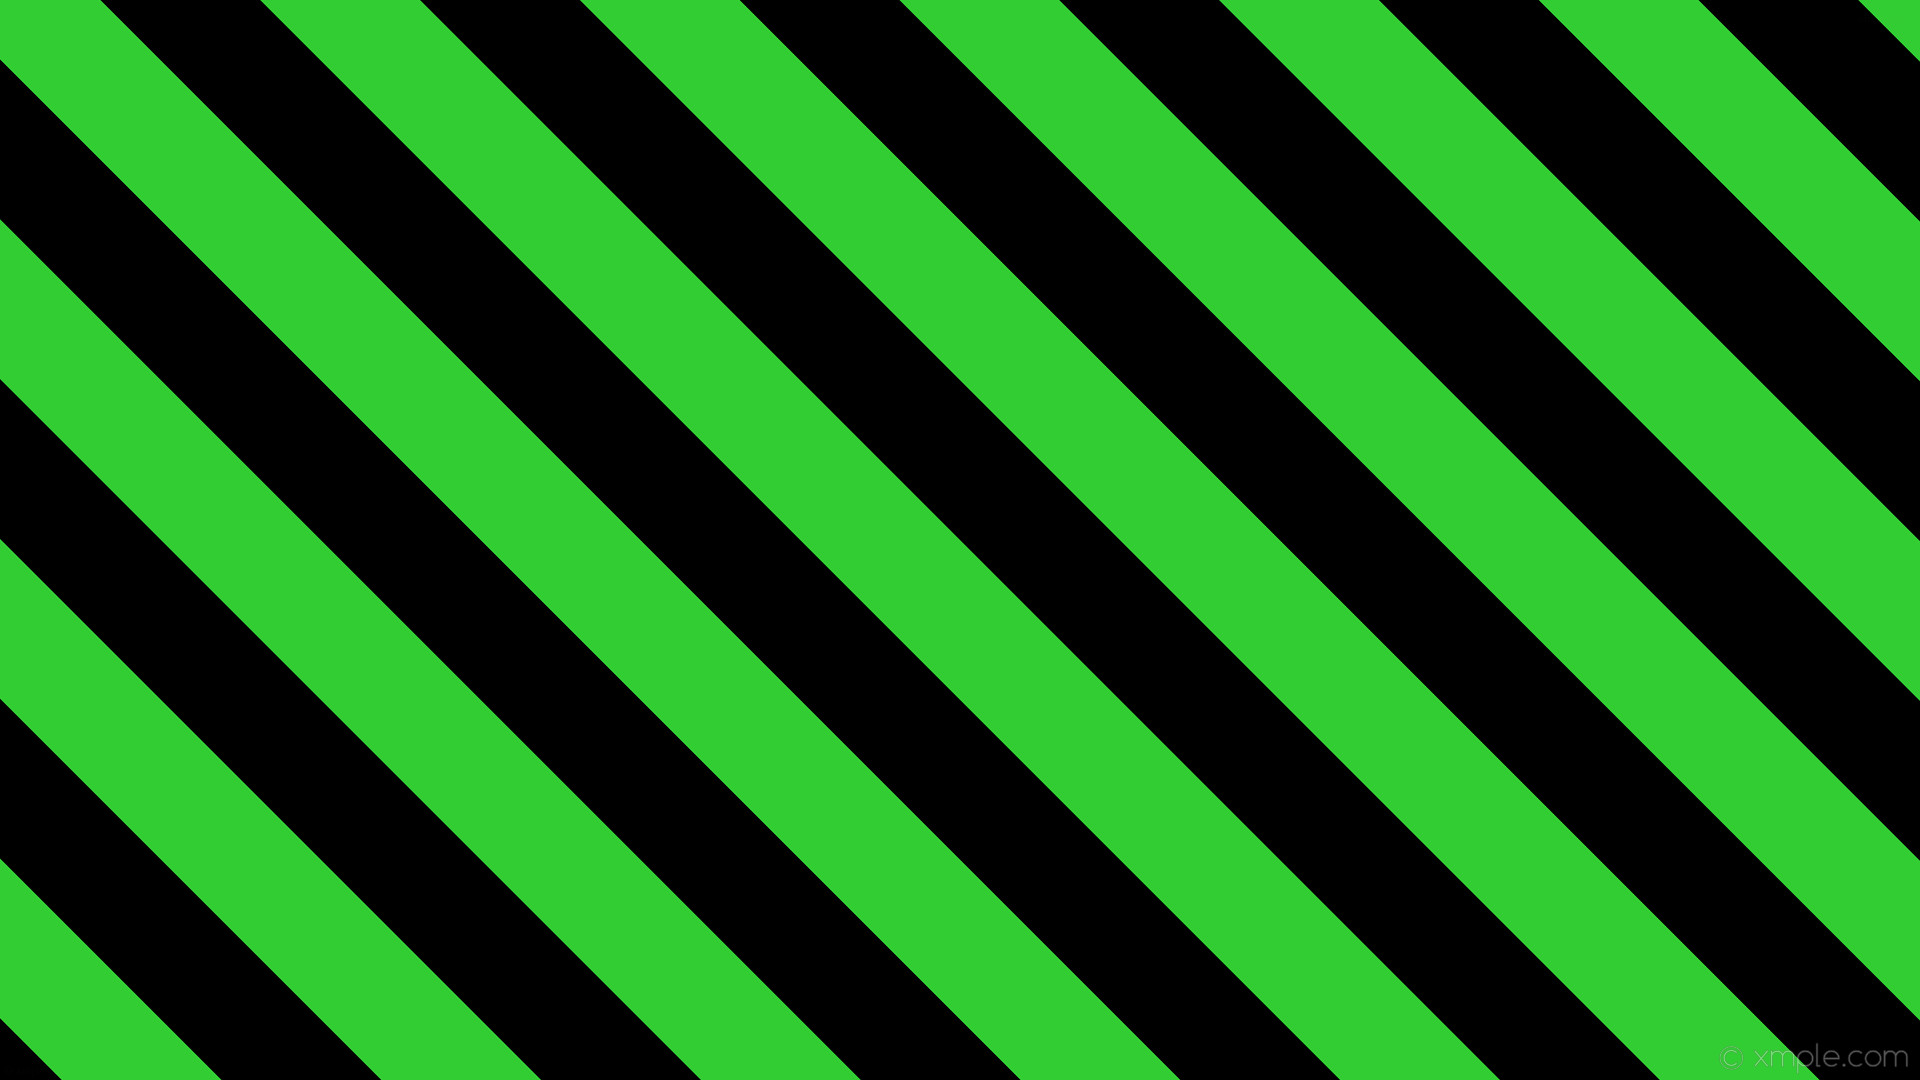 Lime Green and Black Wallpaper 76 images